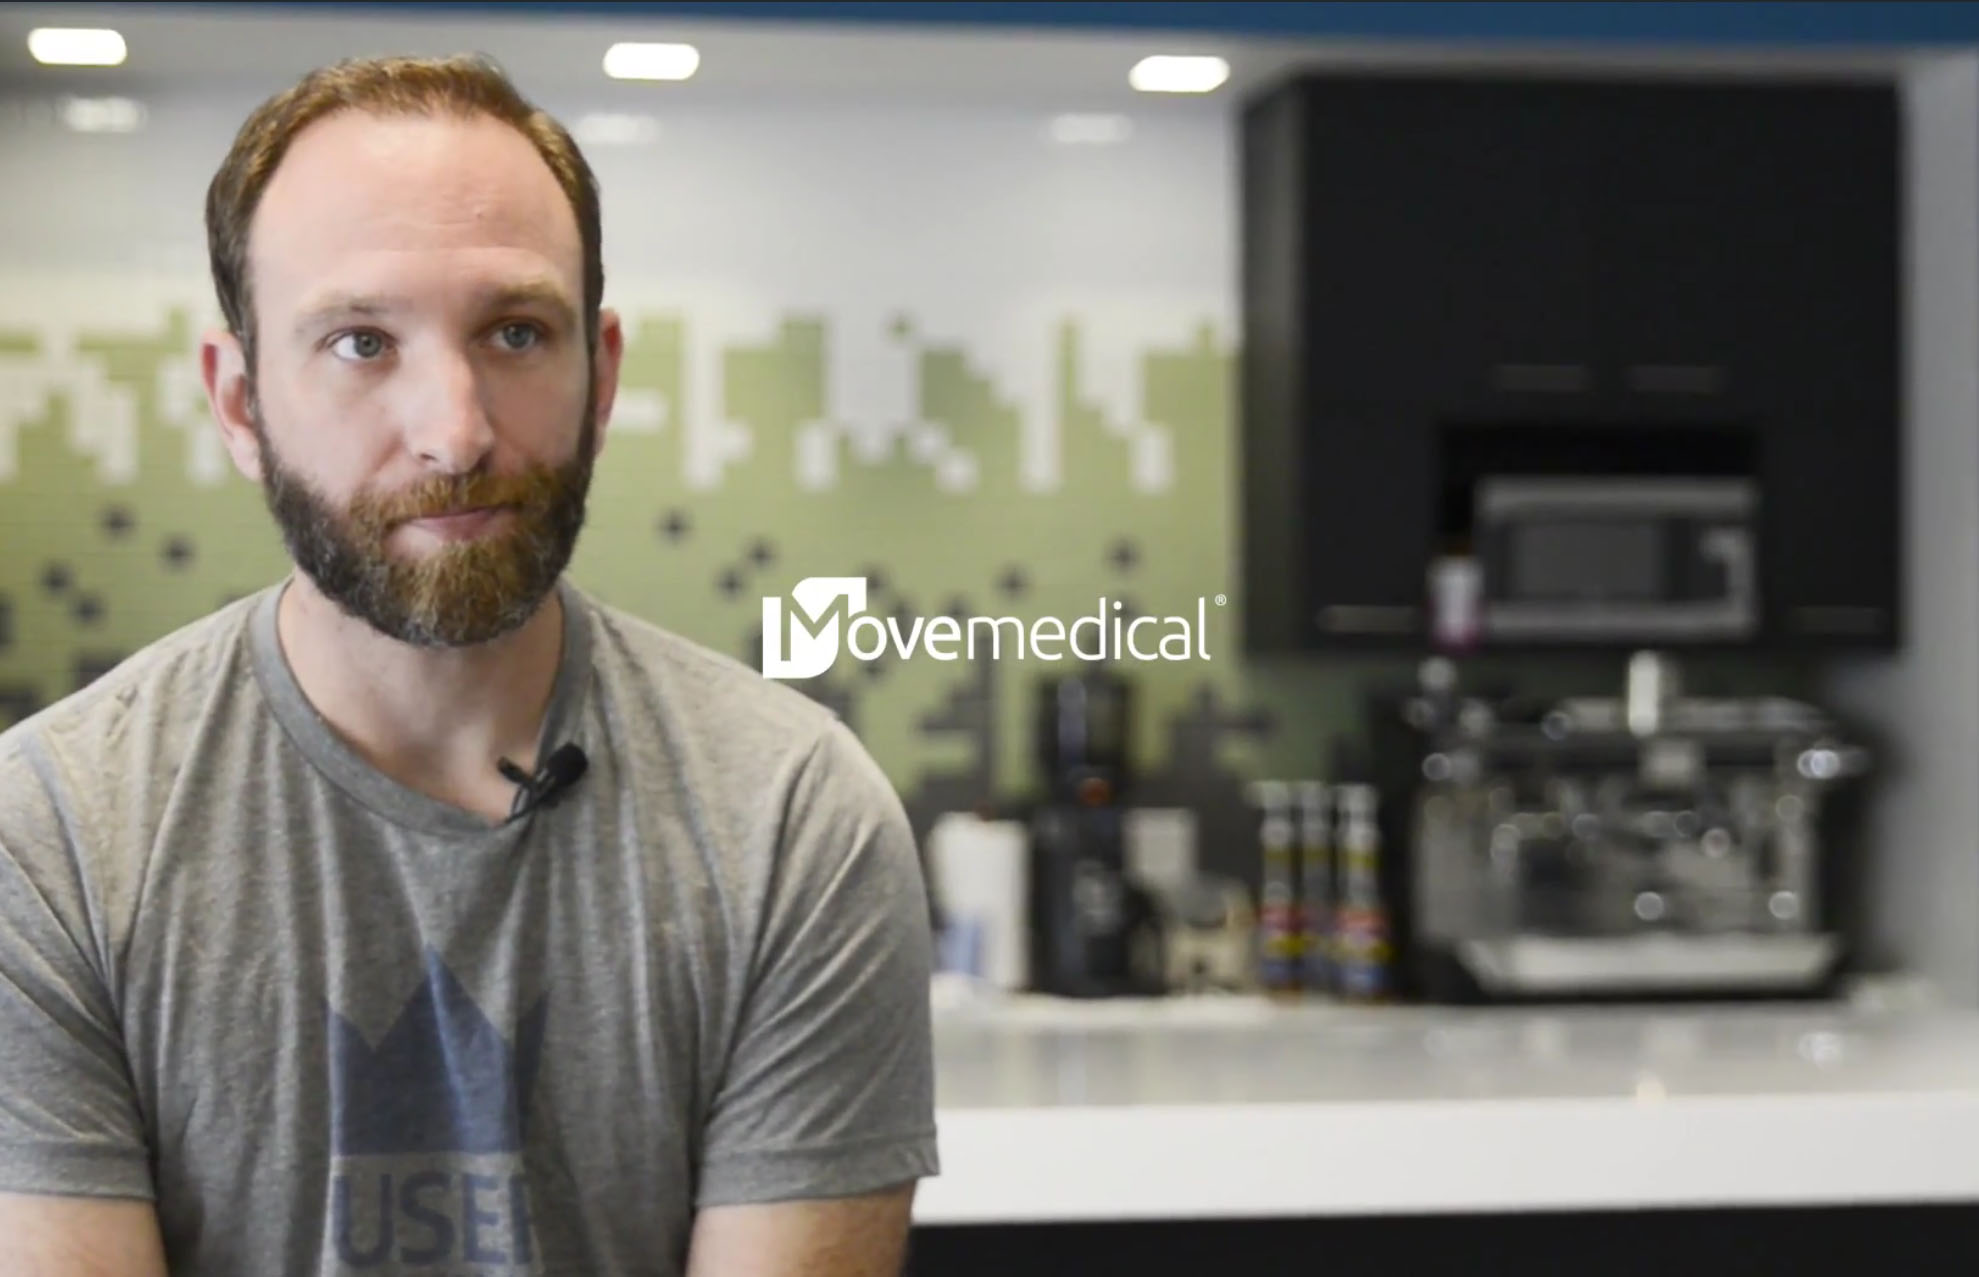 An Inside Look Into the Life of Movemedical